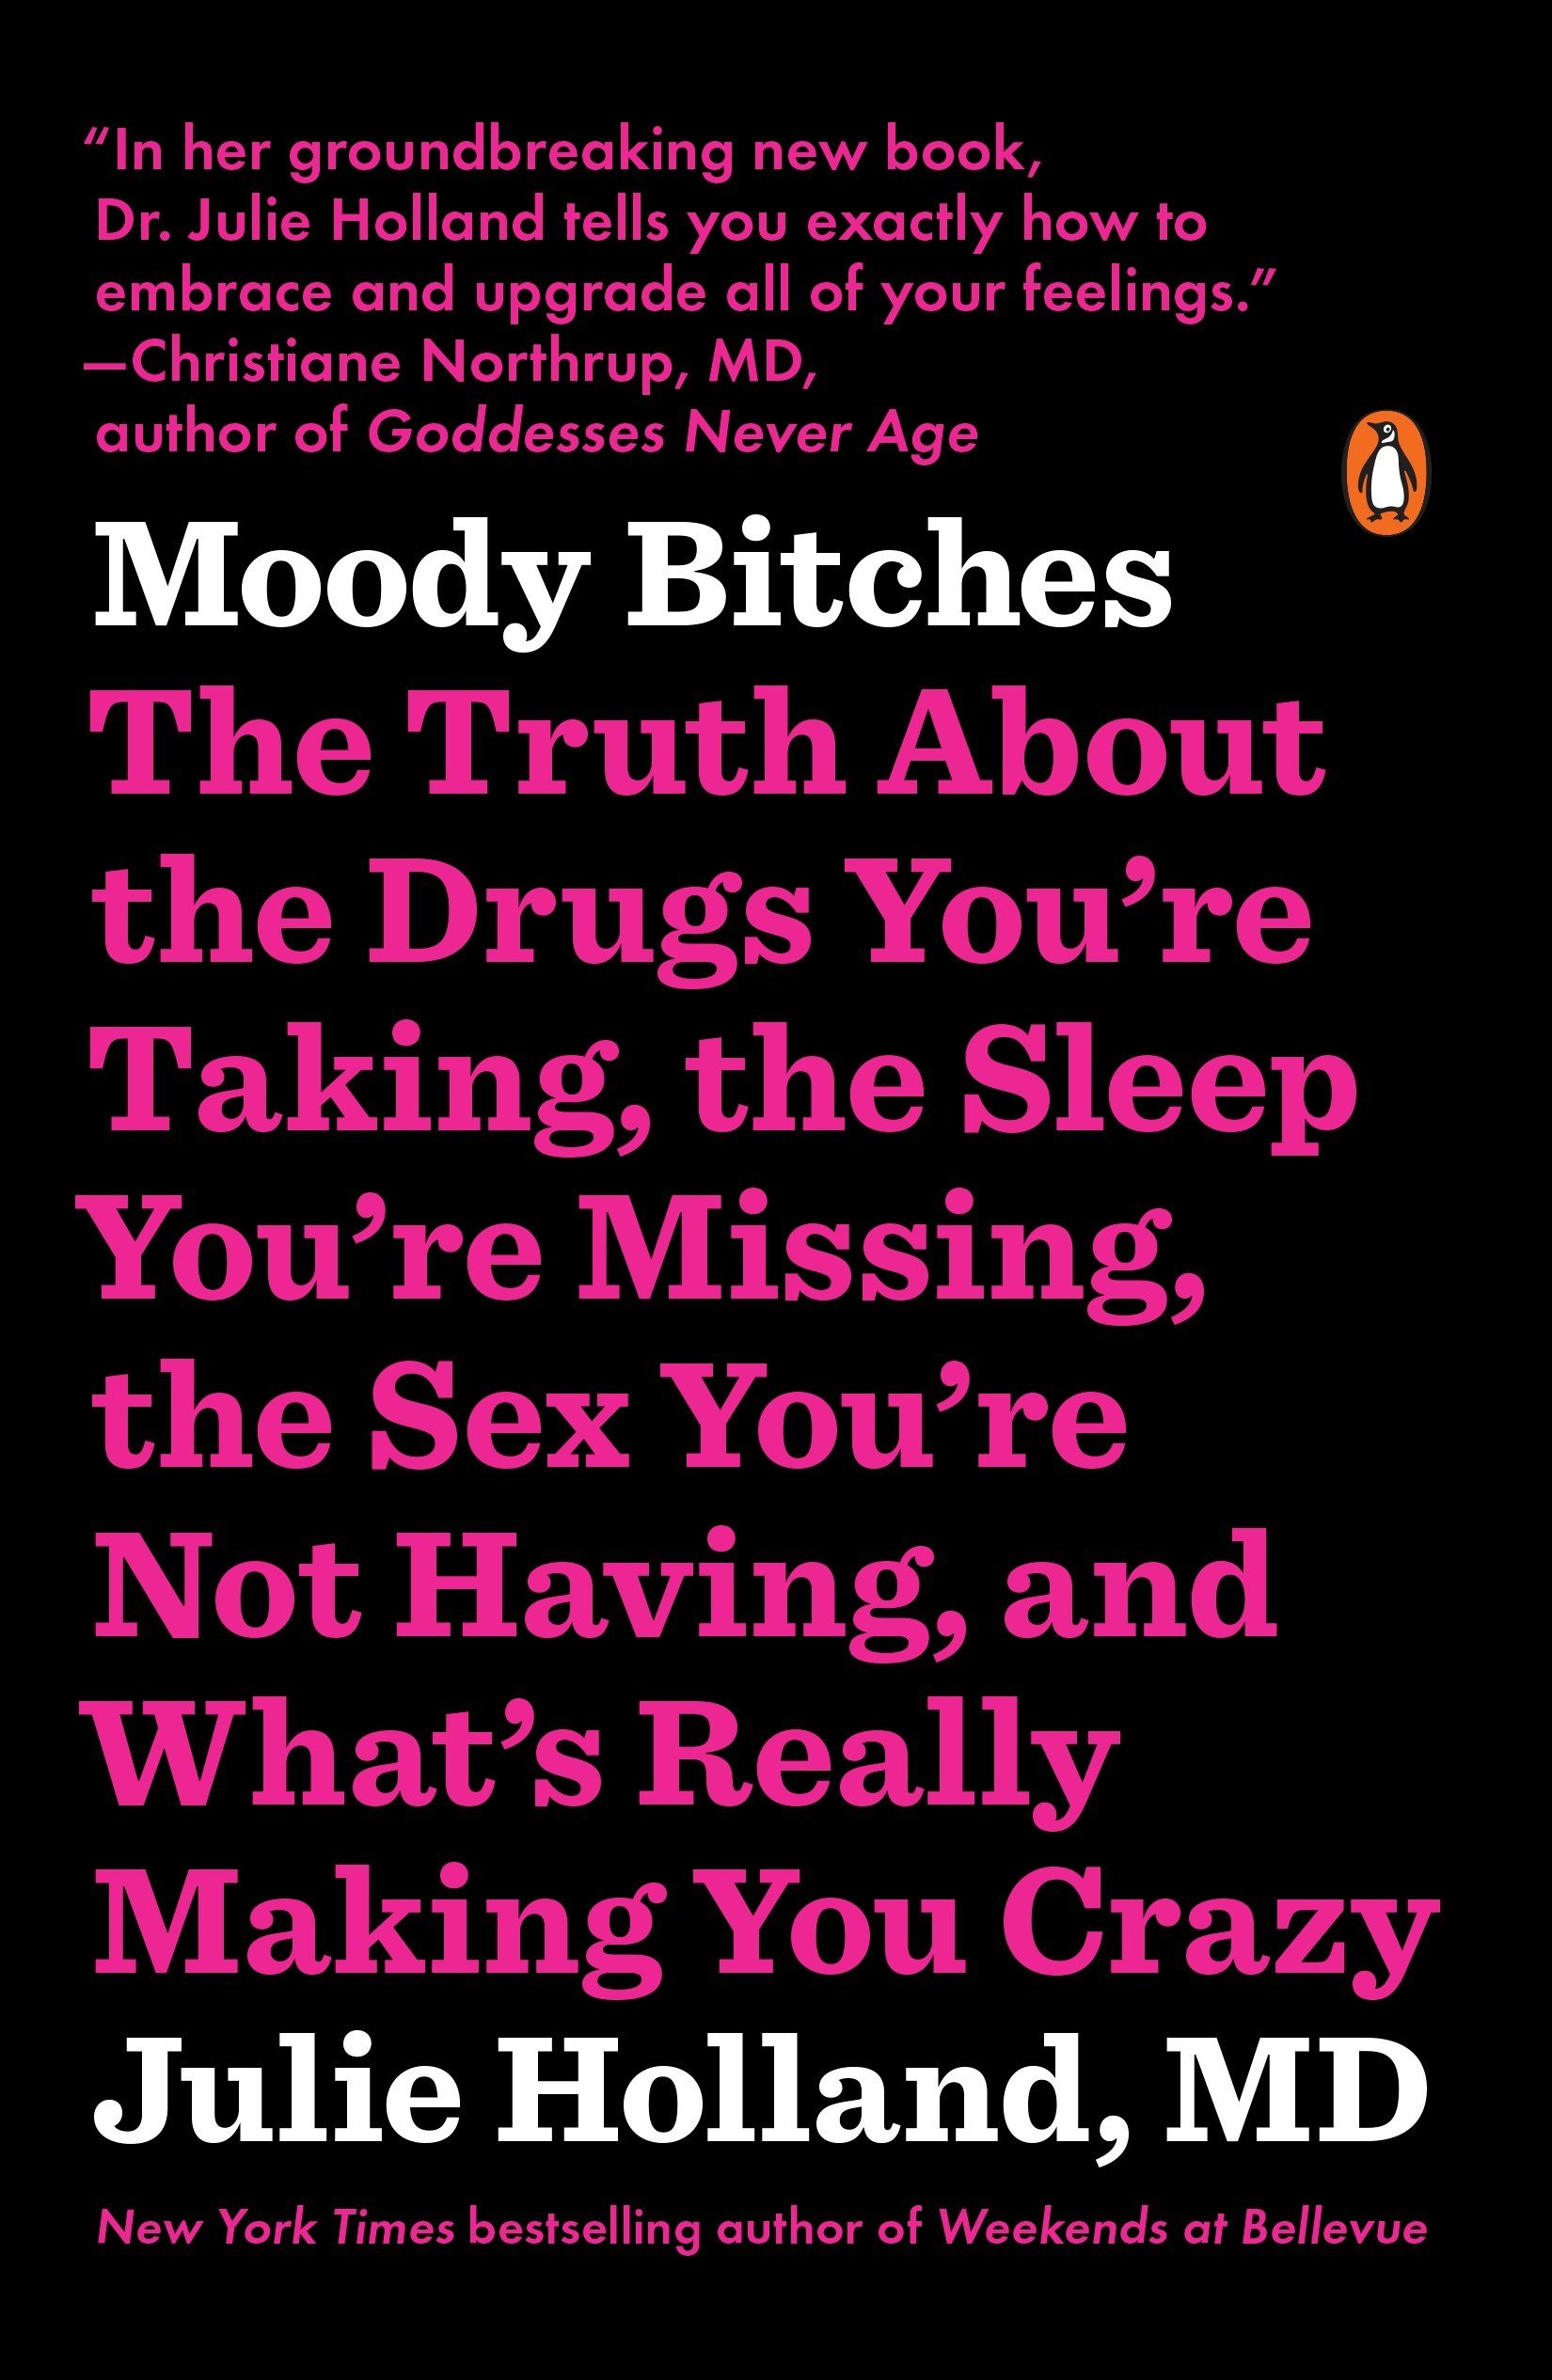 Moody Bitches: The Truth About the Drugs You're Taking, the Sleep You're Missing, the Sex You're Not Having, and What's Really Making You Crazy PDF